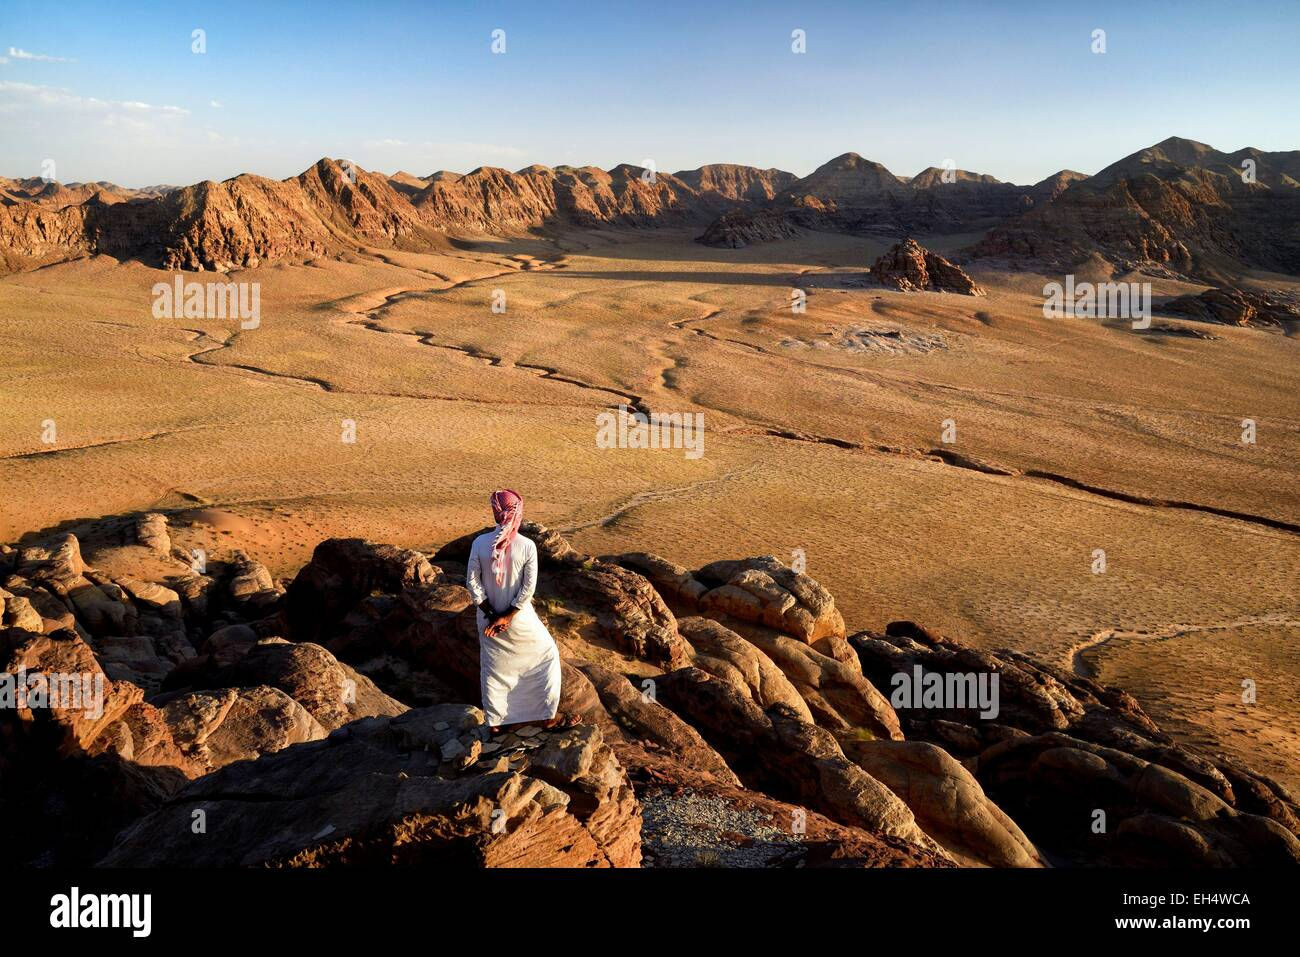 Jordan, Wadi Rum desert, border with Saudi Arabia, Bedouin and view from the mountain Jebel Khasch - Stock Image